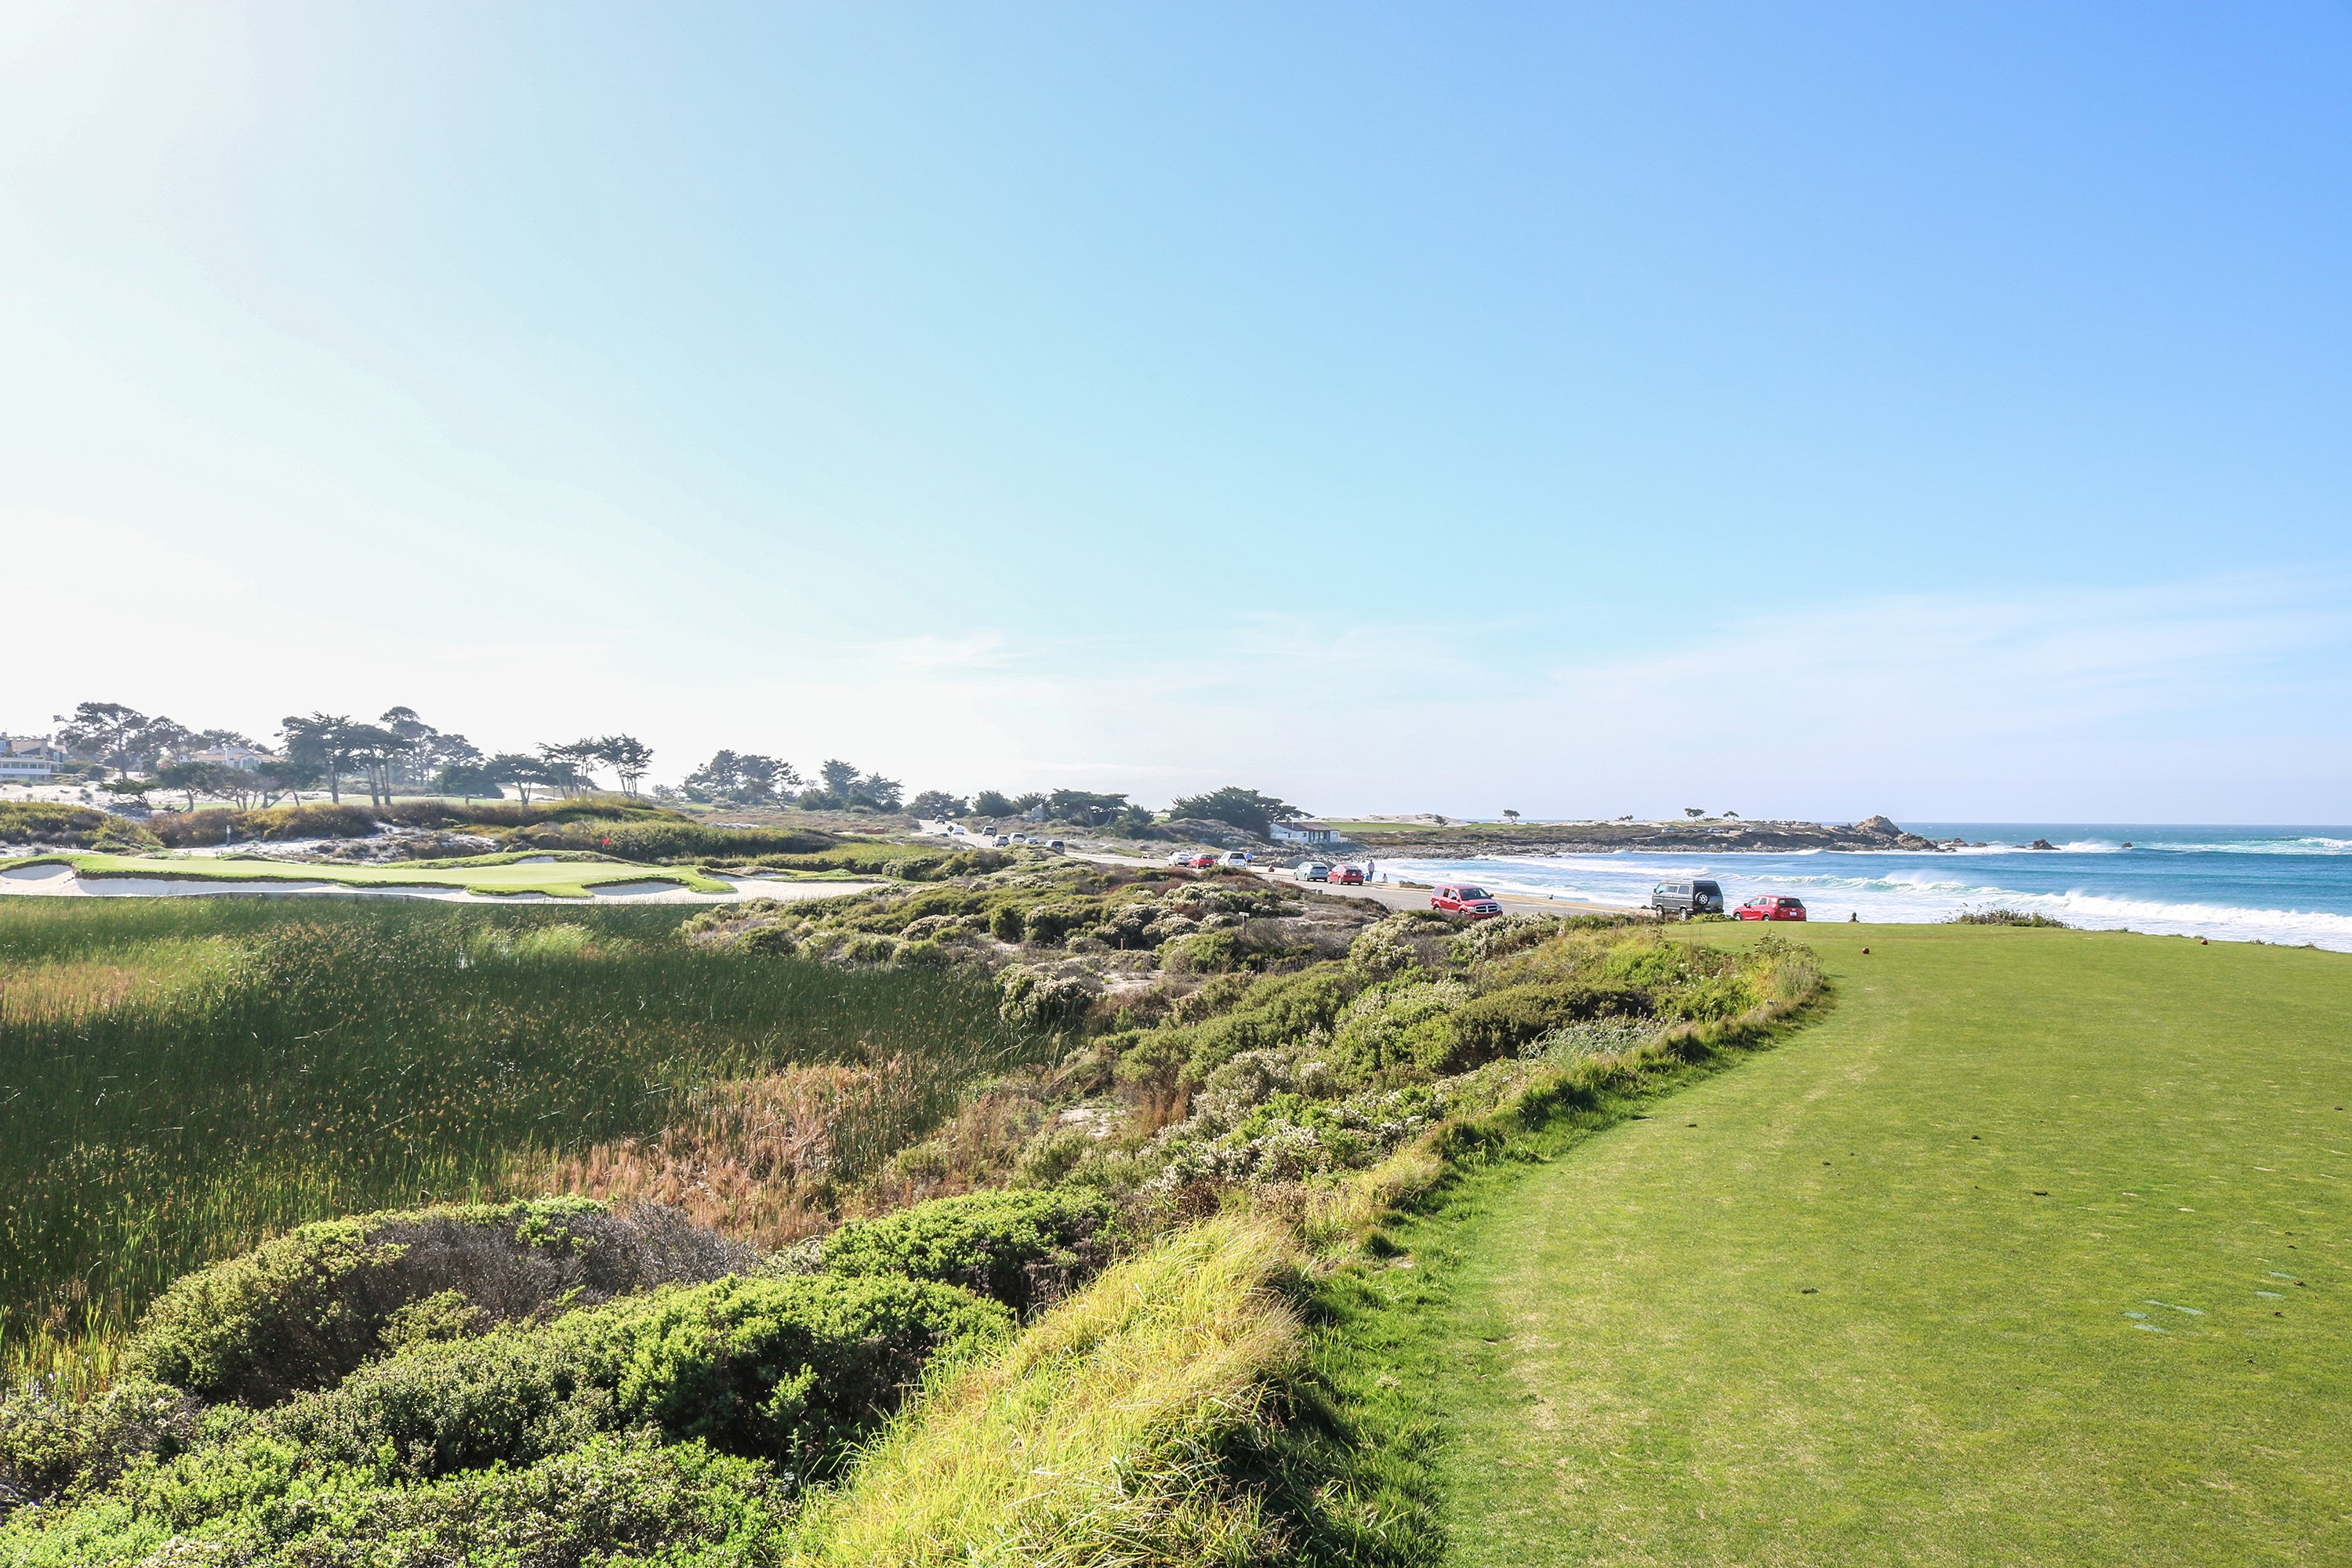 8th tee at Spanish Bay